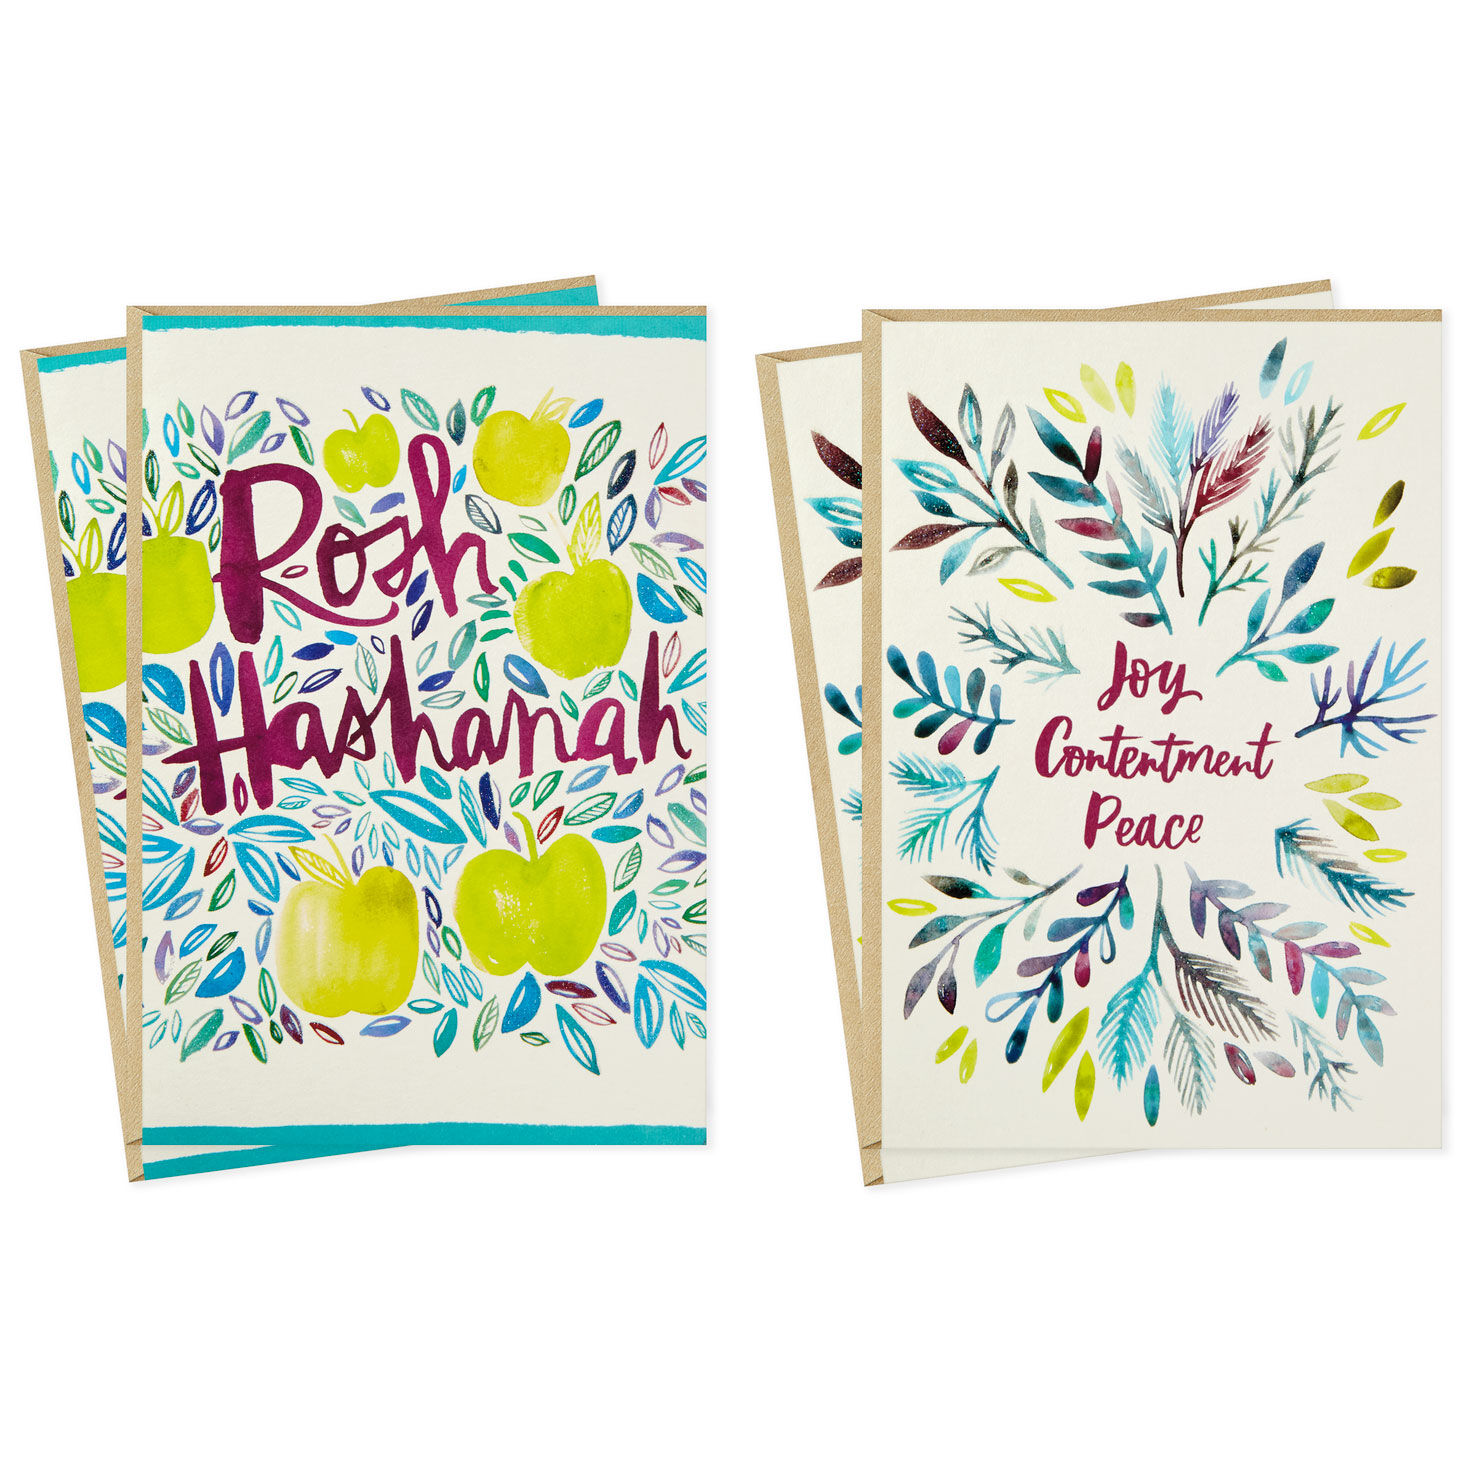 photo relating to Rosh Hashanah Greeting Cards Printable identify Apples and Leaves Rosh Hashanah Playing cards, Pack of 6